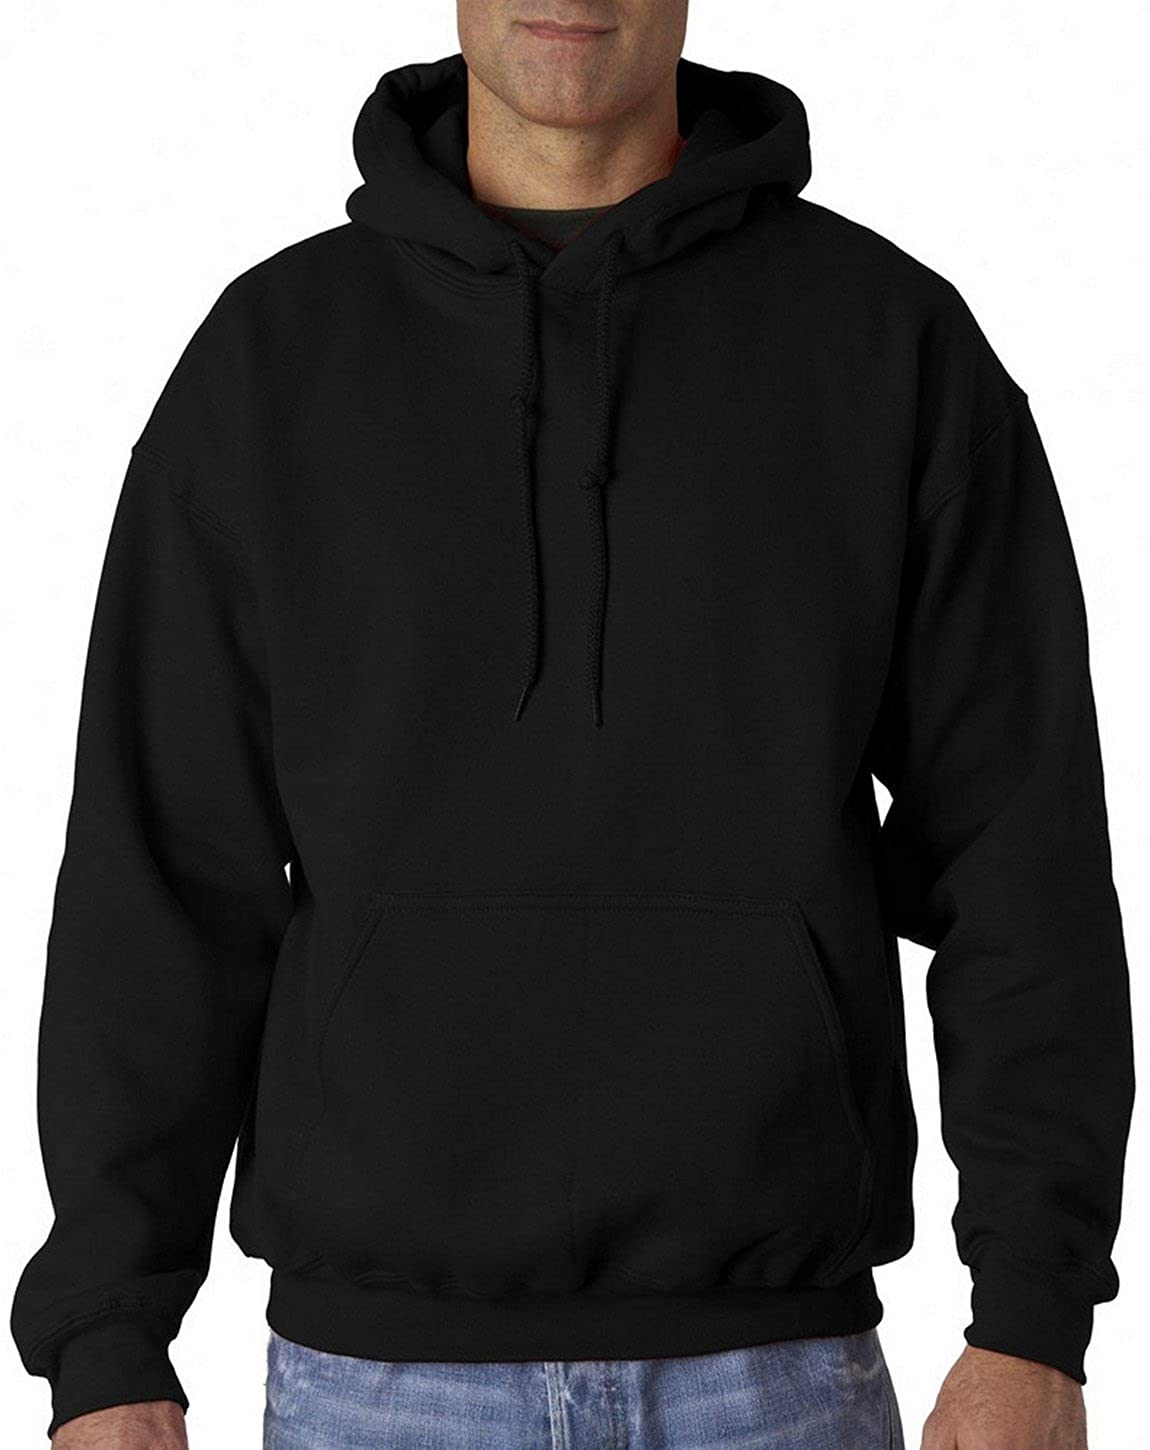 Fashion Gildan 12500 Hooded Sweatshirt